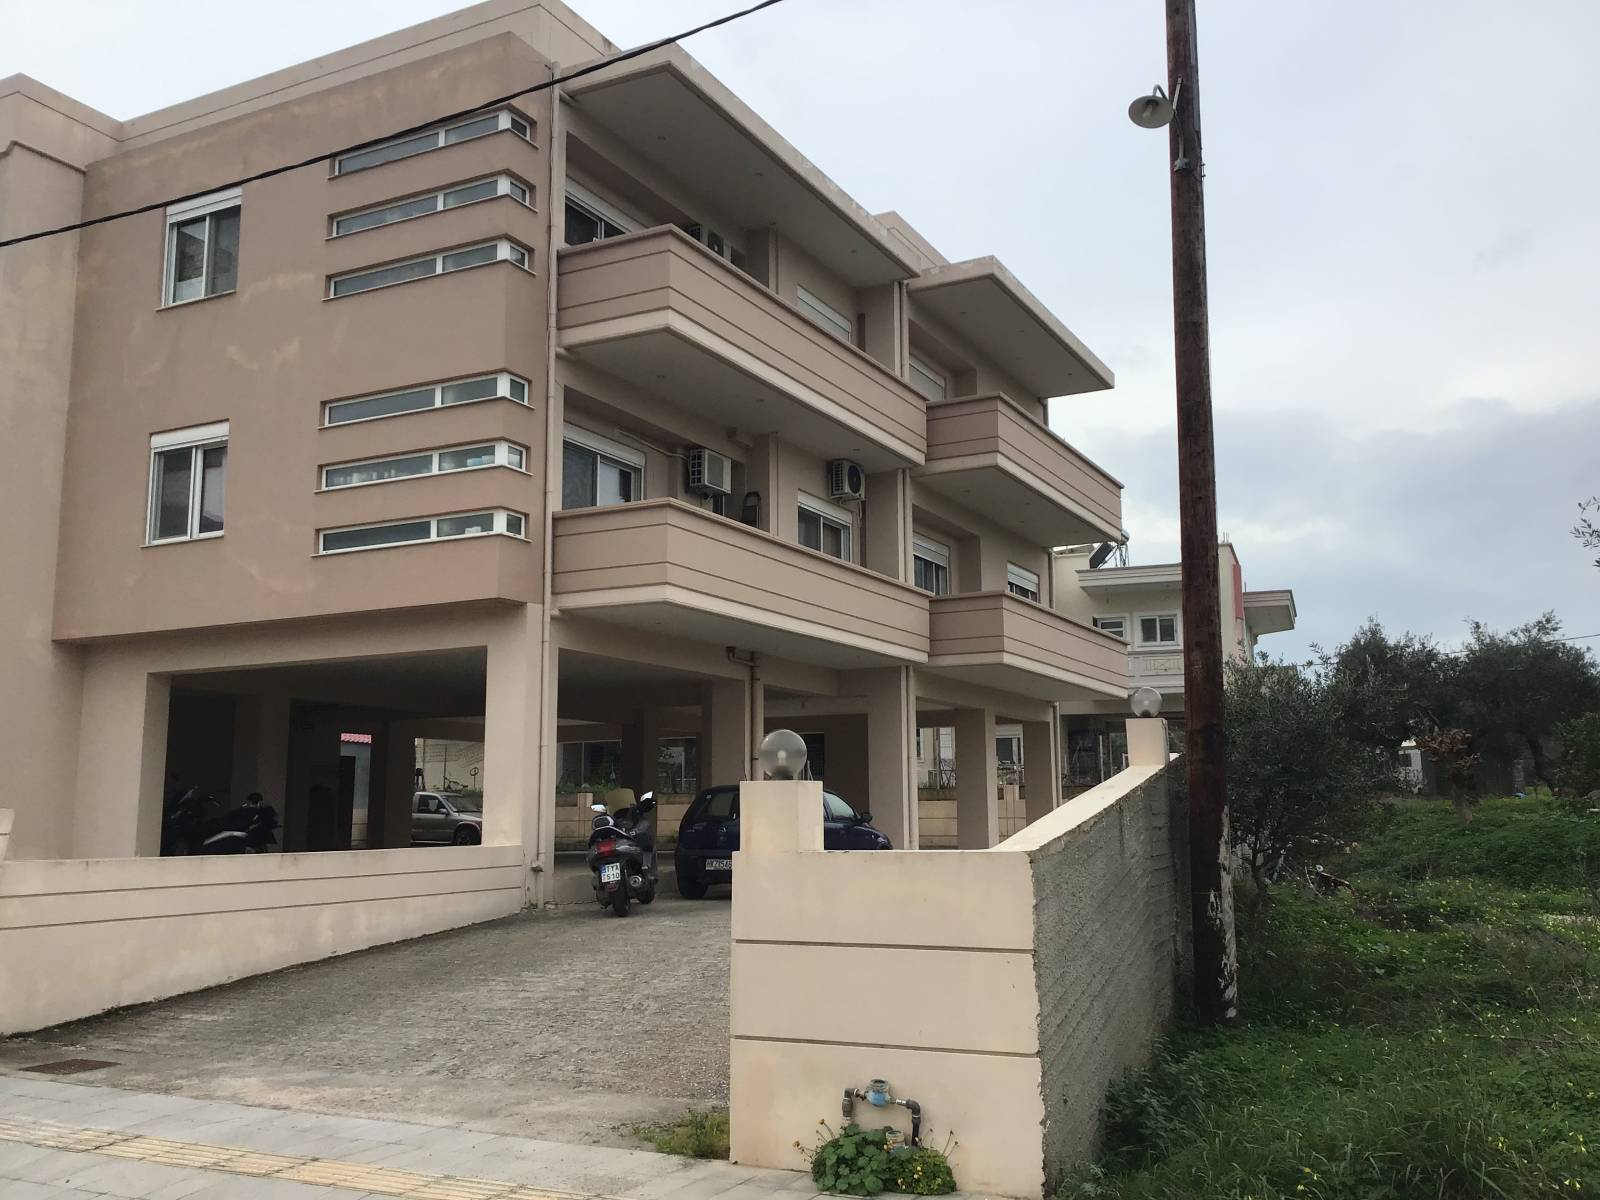 4 One-bedroom Apartments near the centre of Chania